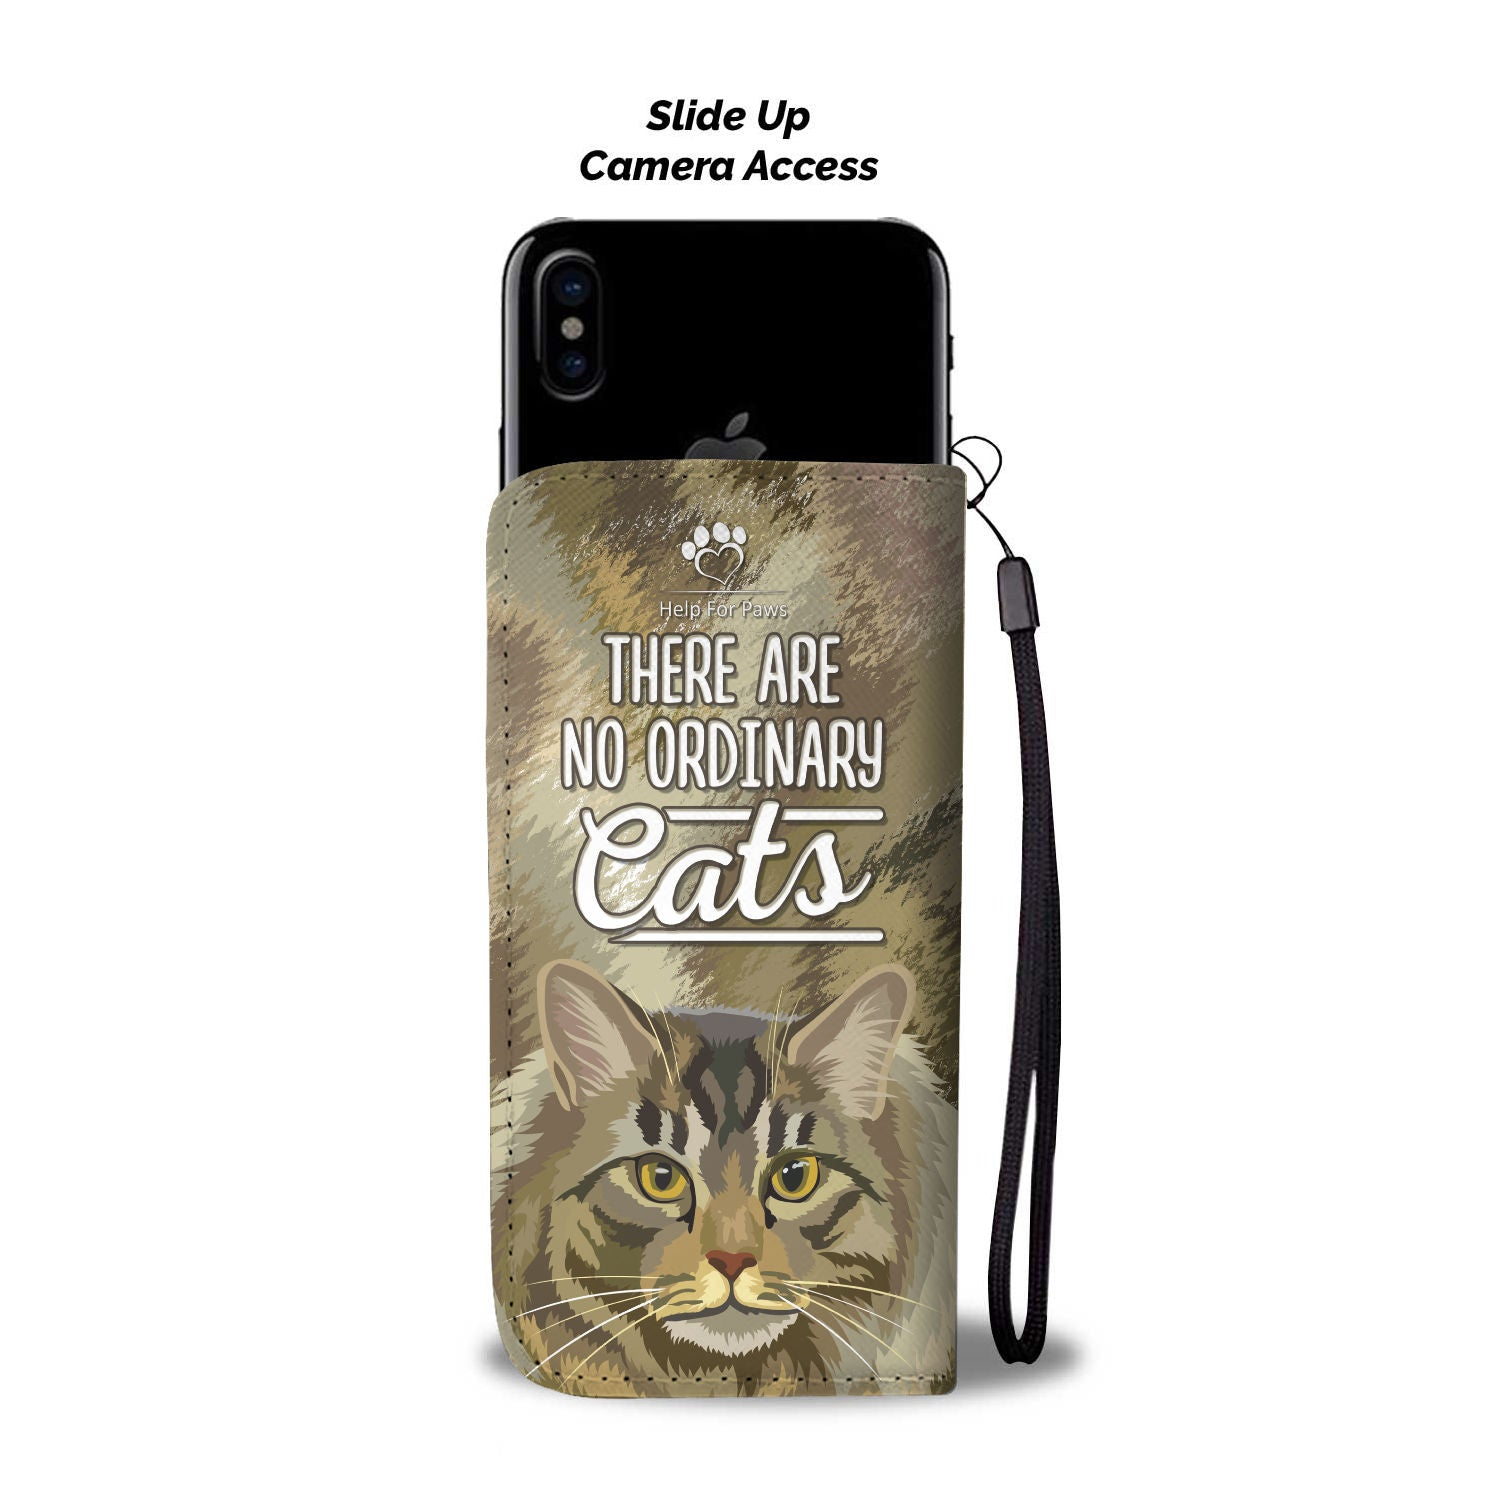 No Ordinary Cats Phone Case - LG